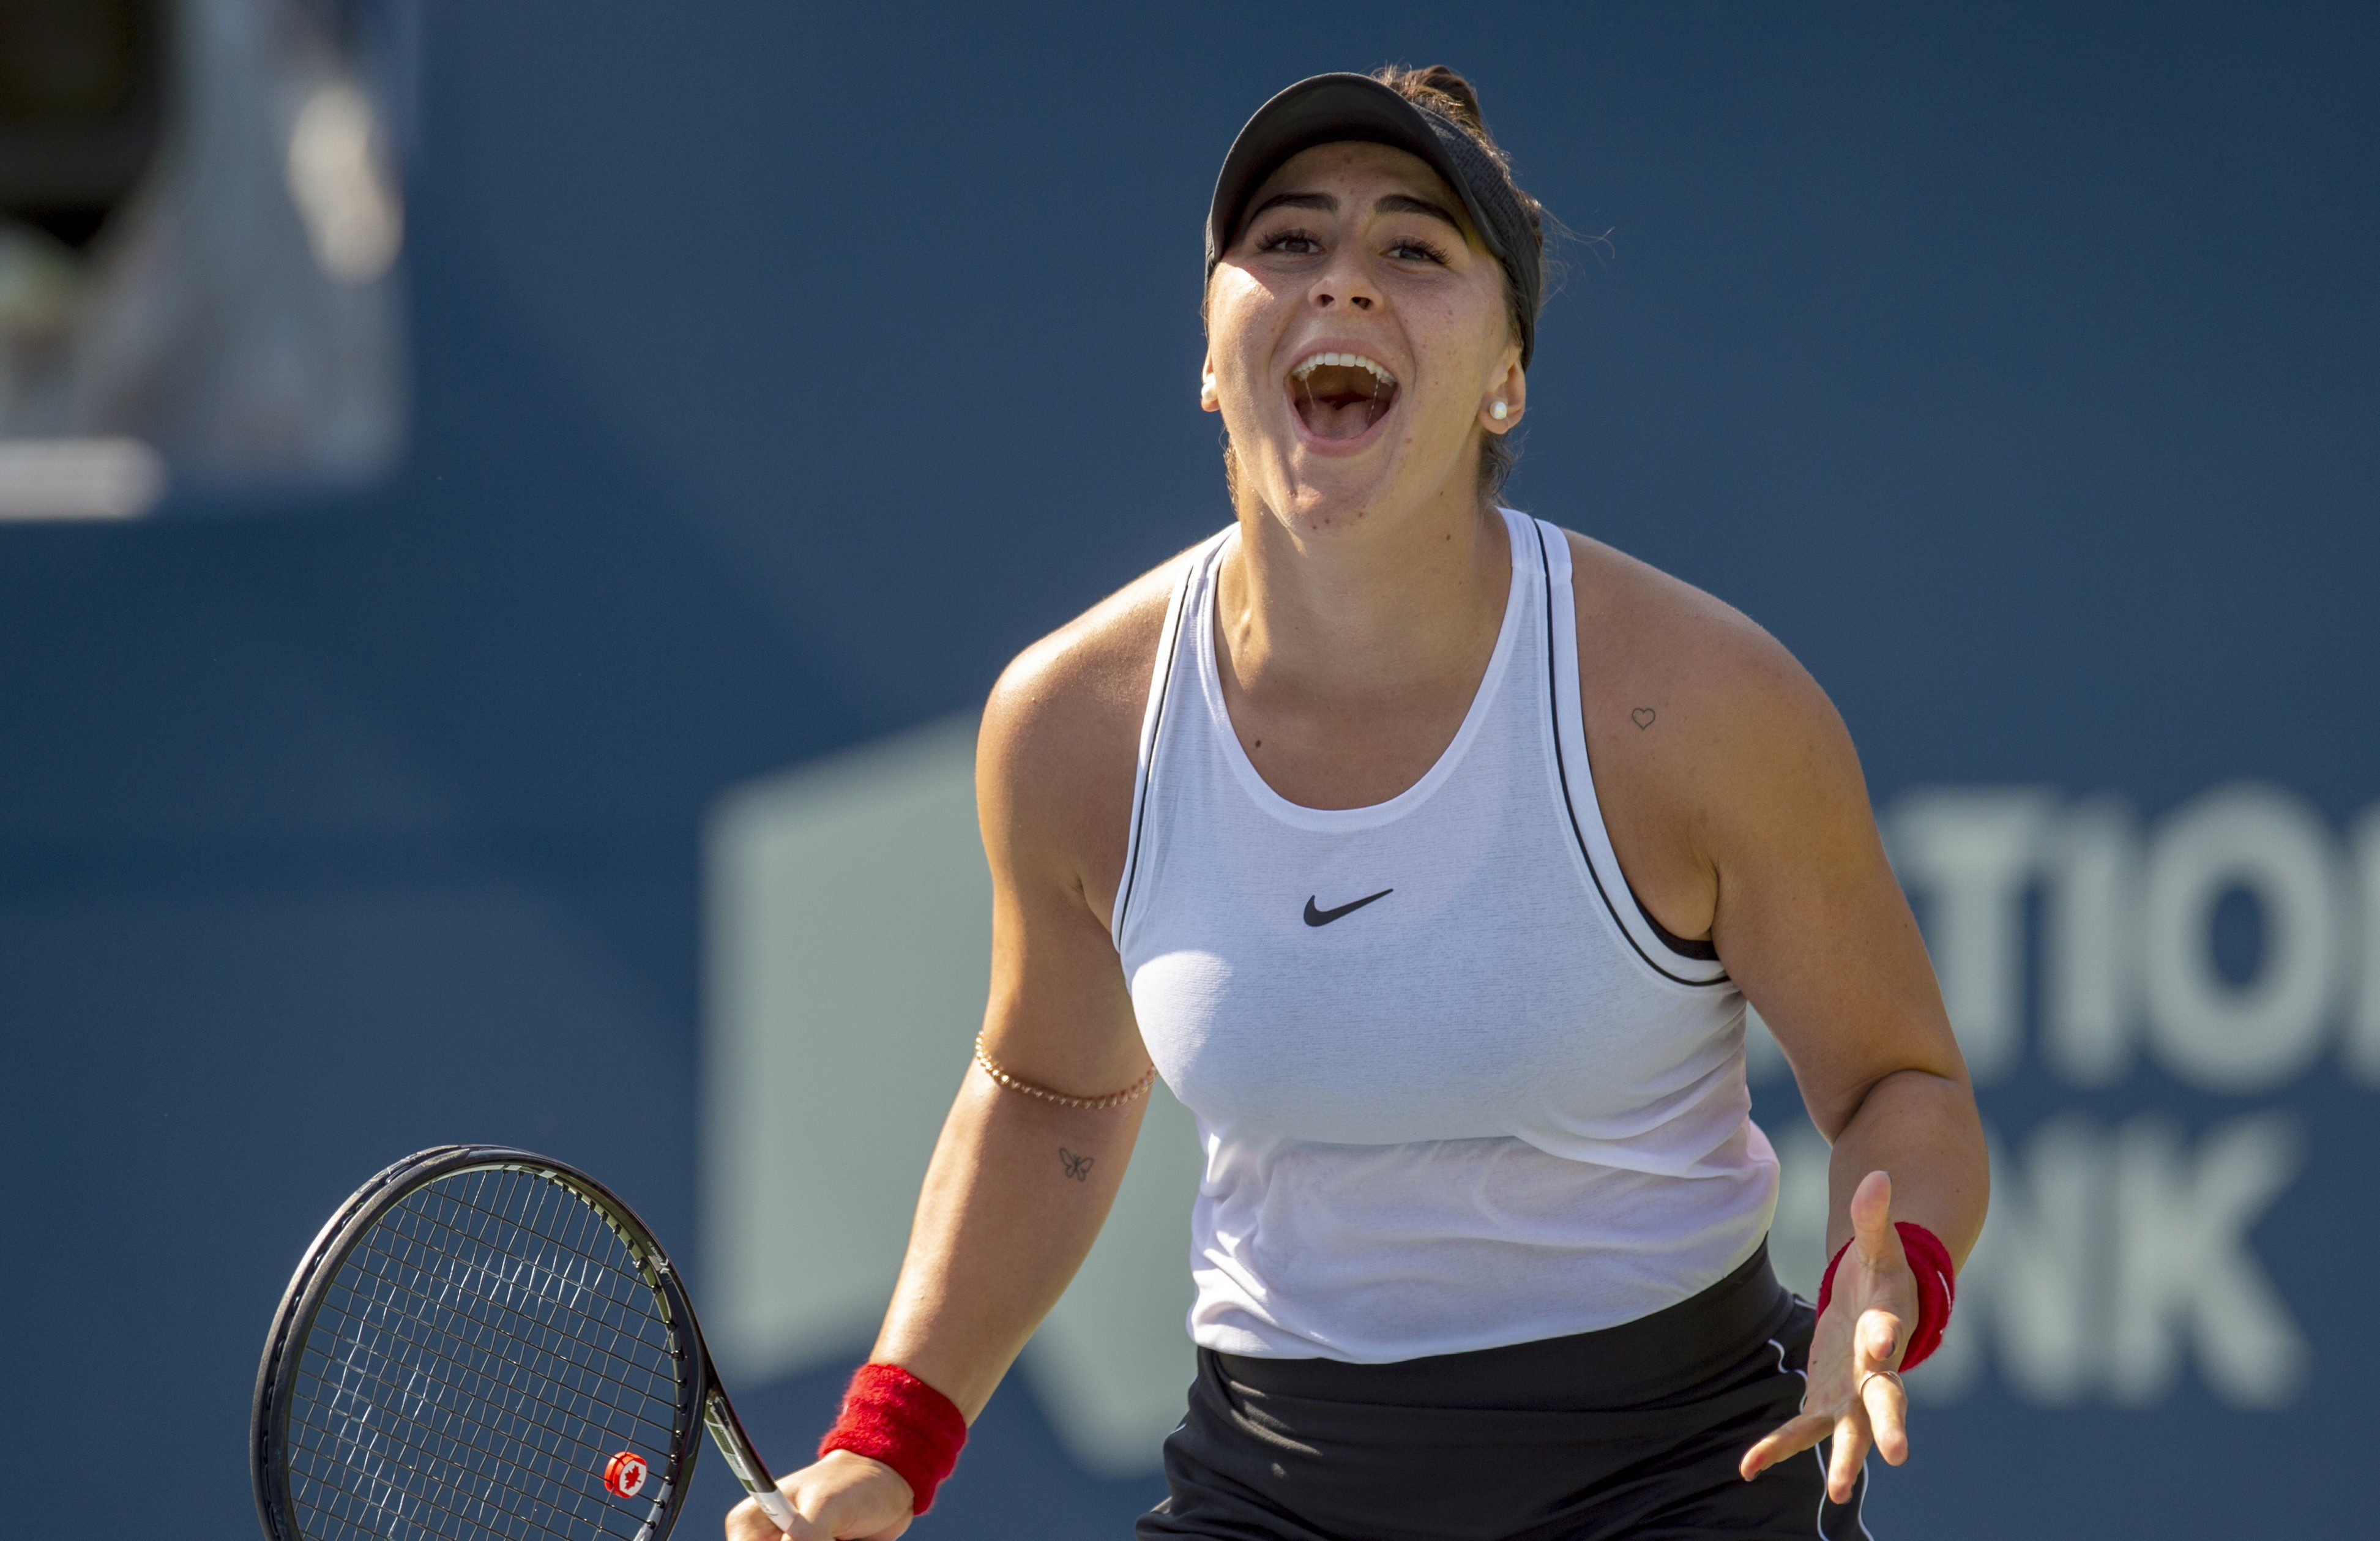 Bianca celebrates during a match at the Rogers Cup.